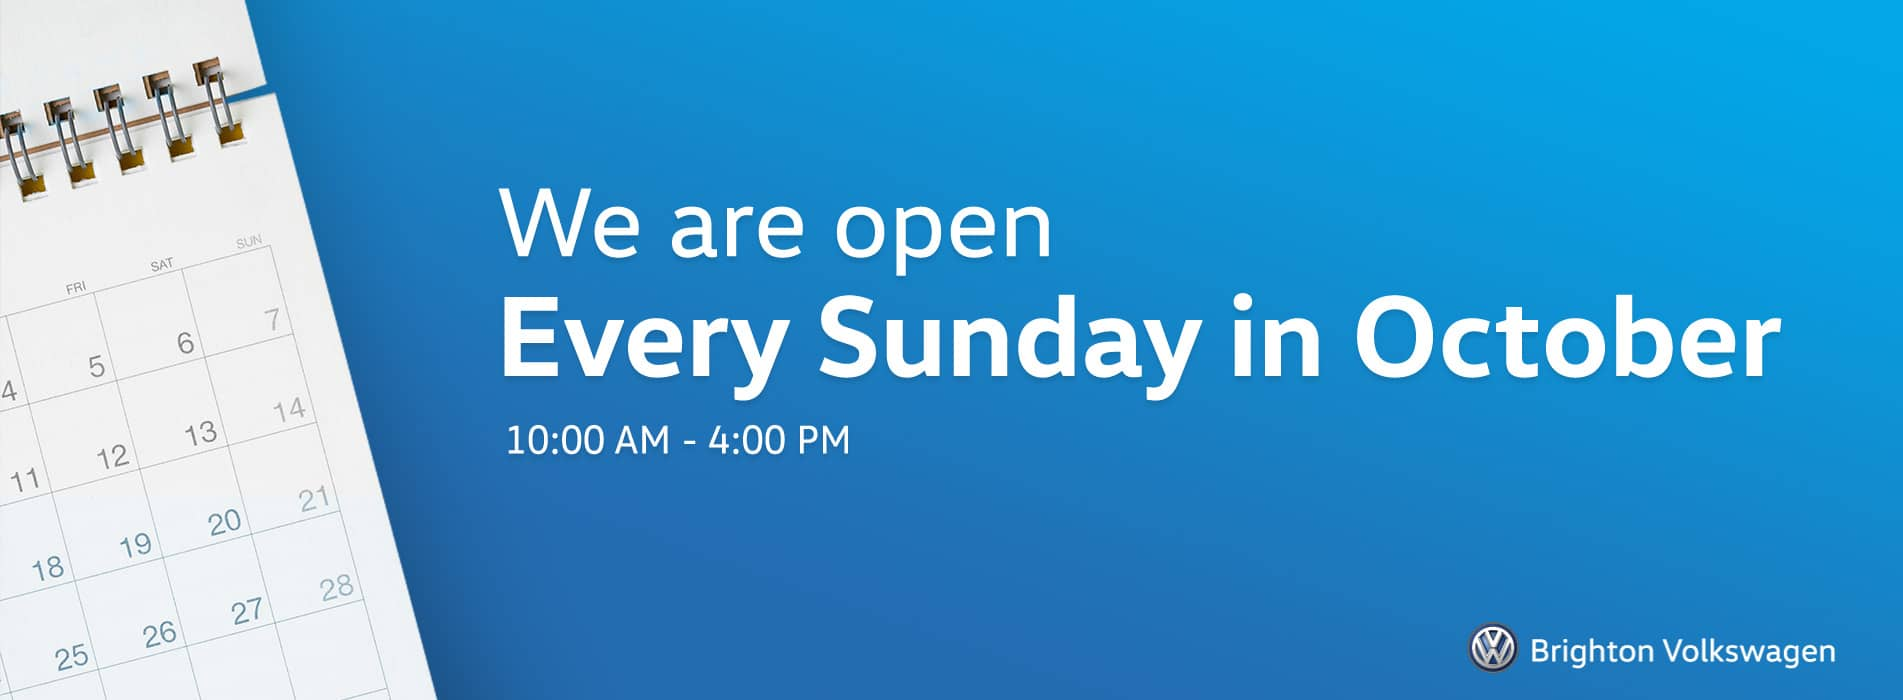 We are open - Every Sunday in October